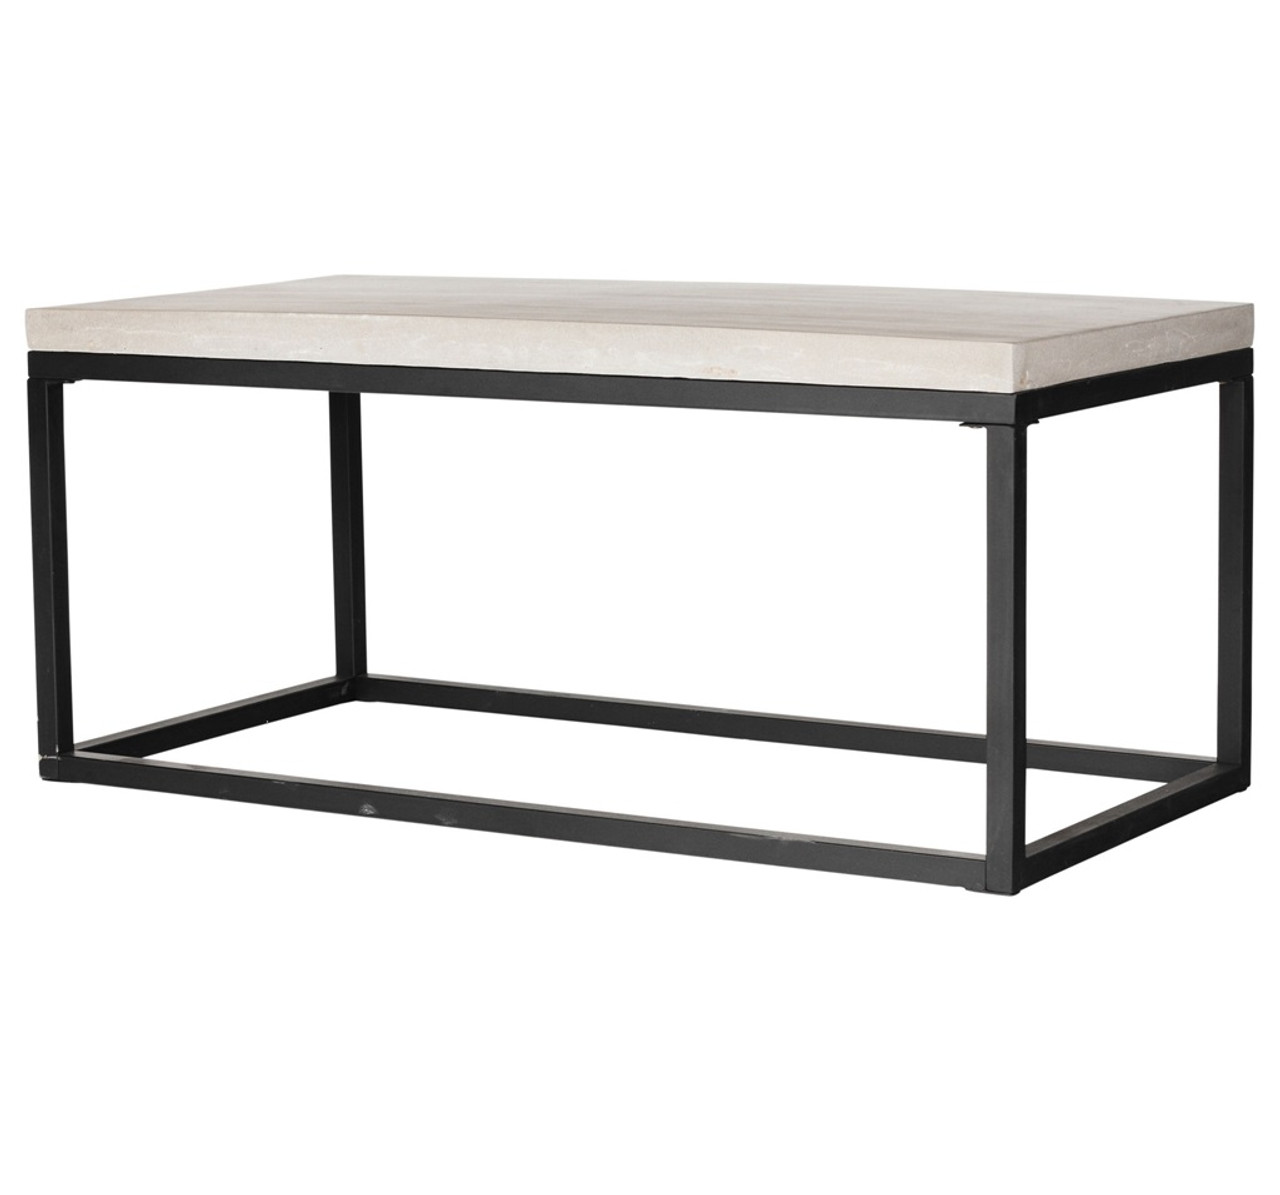 Perfect Masonry Concrete Box Frame Rectangular Coffee Table